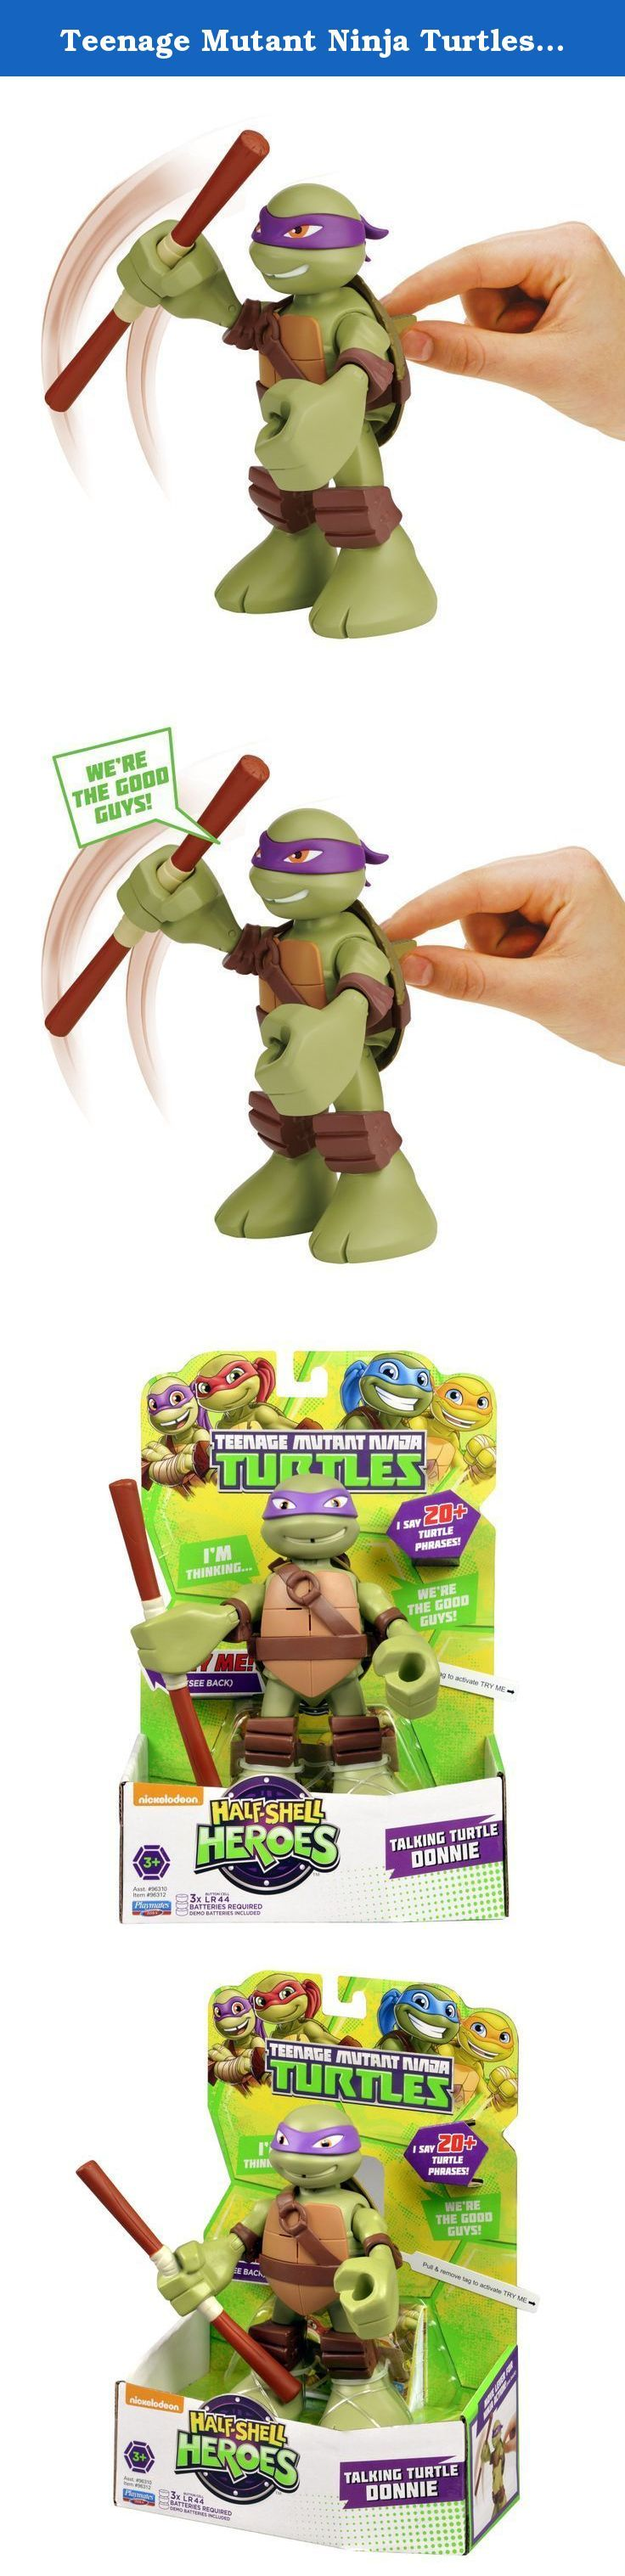 Teenage Mutant Ninja Turtles Pre-Cool Half Shell Heroes 6 Inch Donatello Talking Turtles Figure. Coming out of their shells for the very first time, the Half-Shell Heroes are ready for non-stop ninja adventure! You can join the fun-loving brothers in their pizza-fueled missions as they team up to mess with menacing mutants and stop the Shredder.